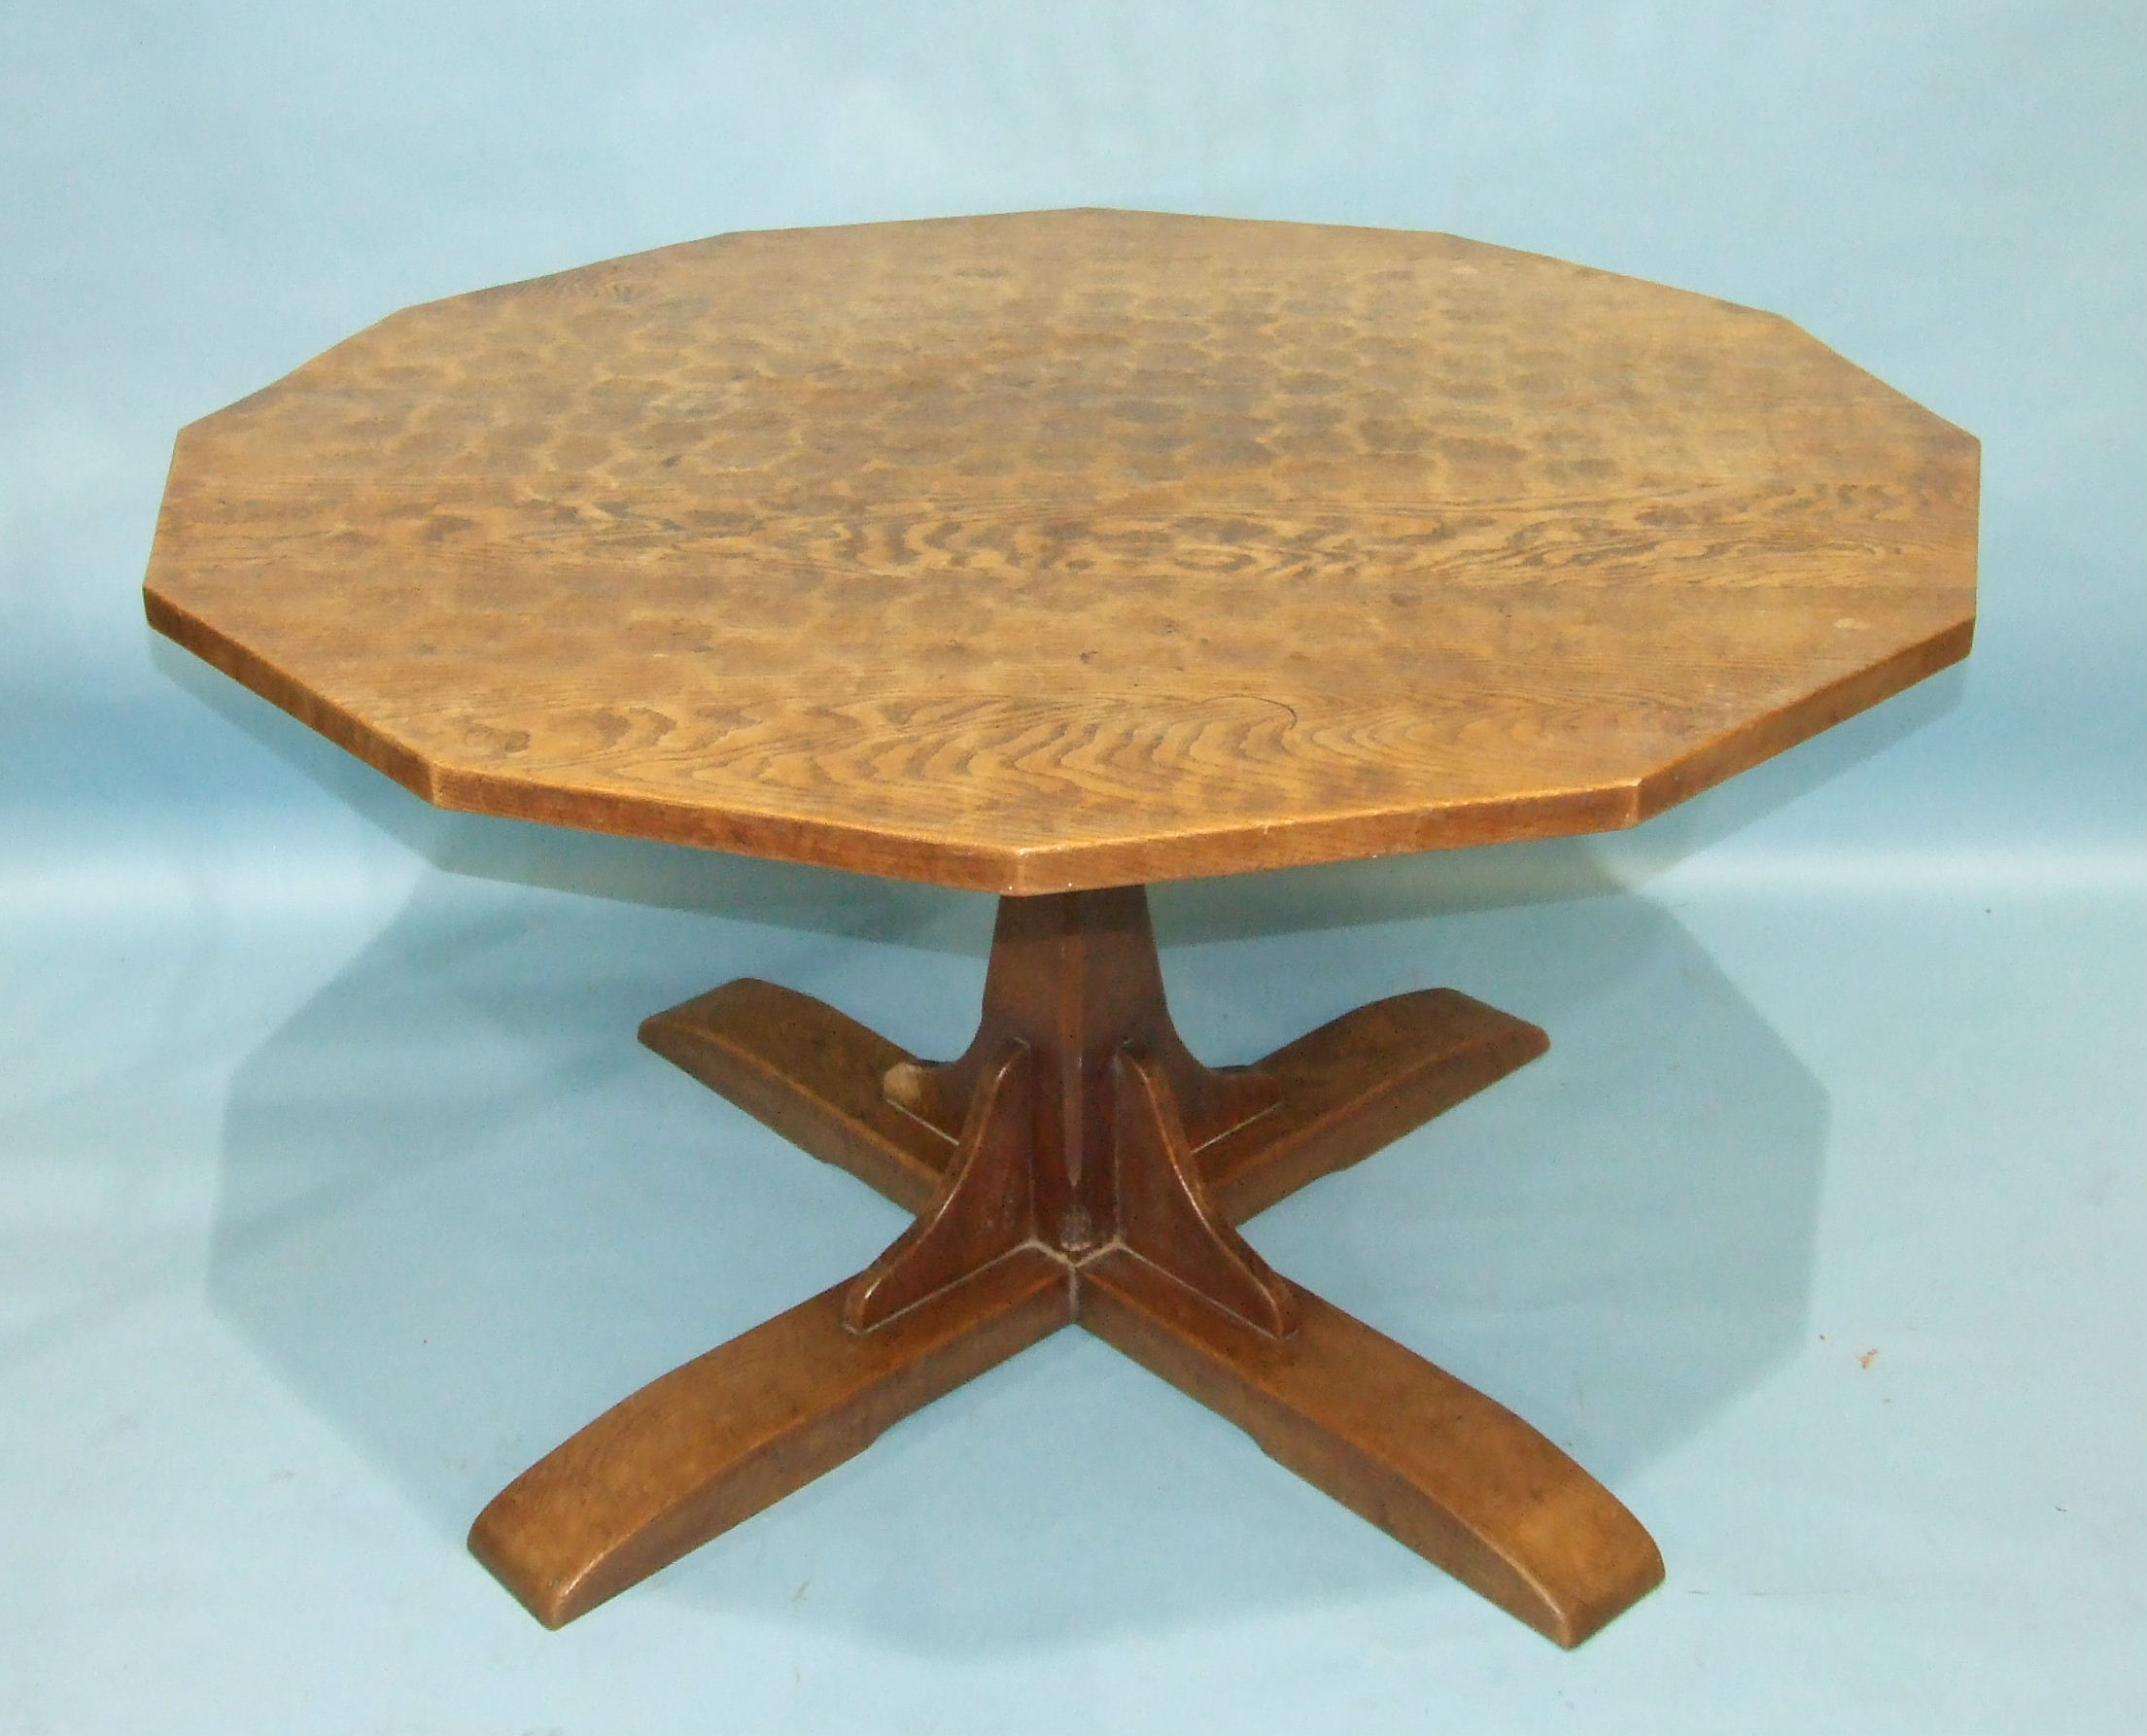 Lot 108 - A Thomas 'Gnomeman' Whittaker oak twelve-sided dining table, the adzed top on a central pillar